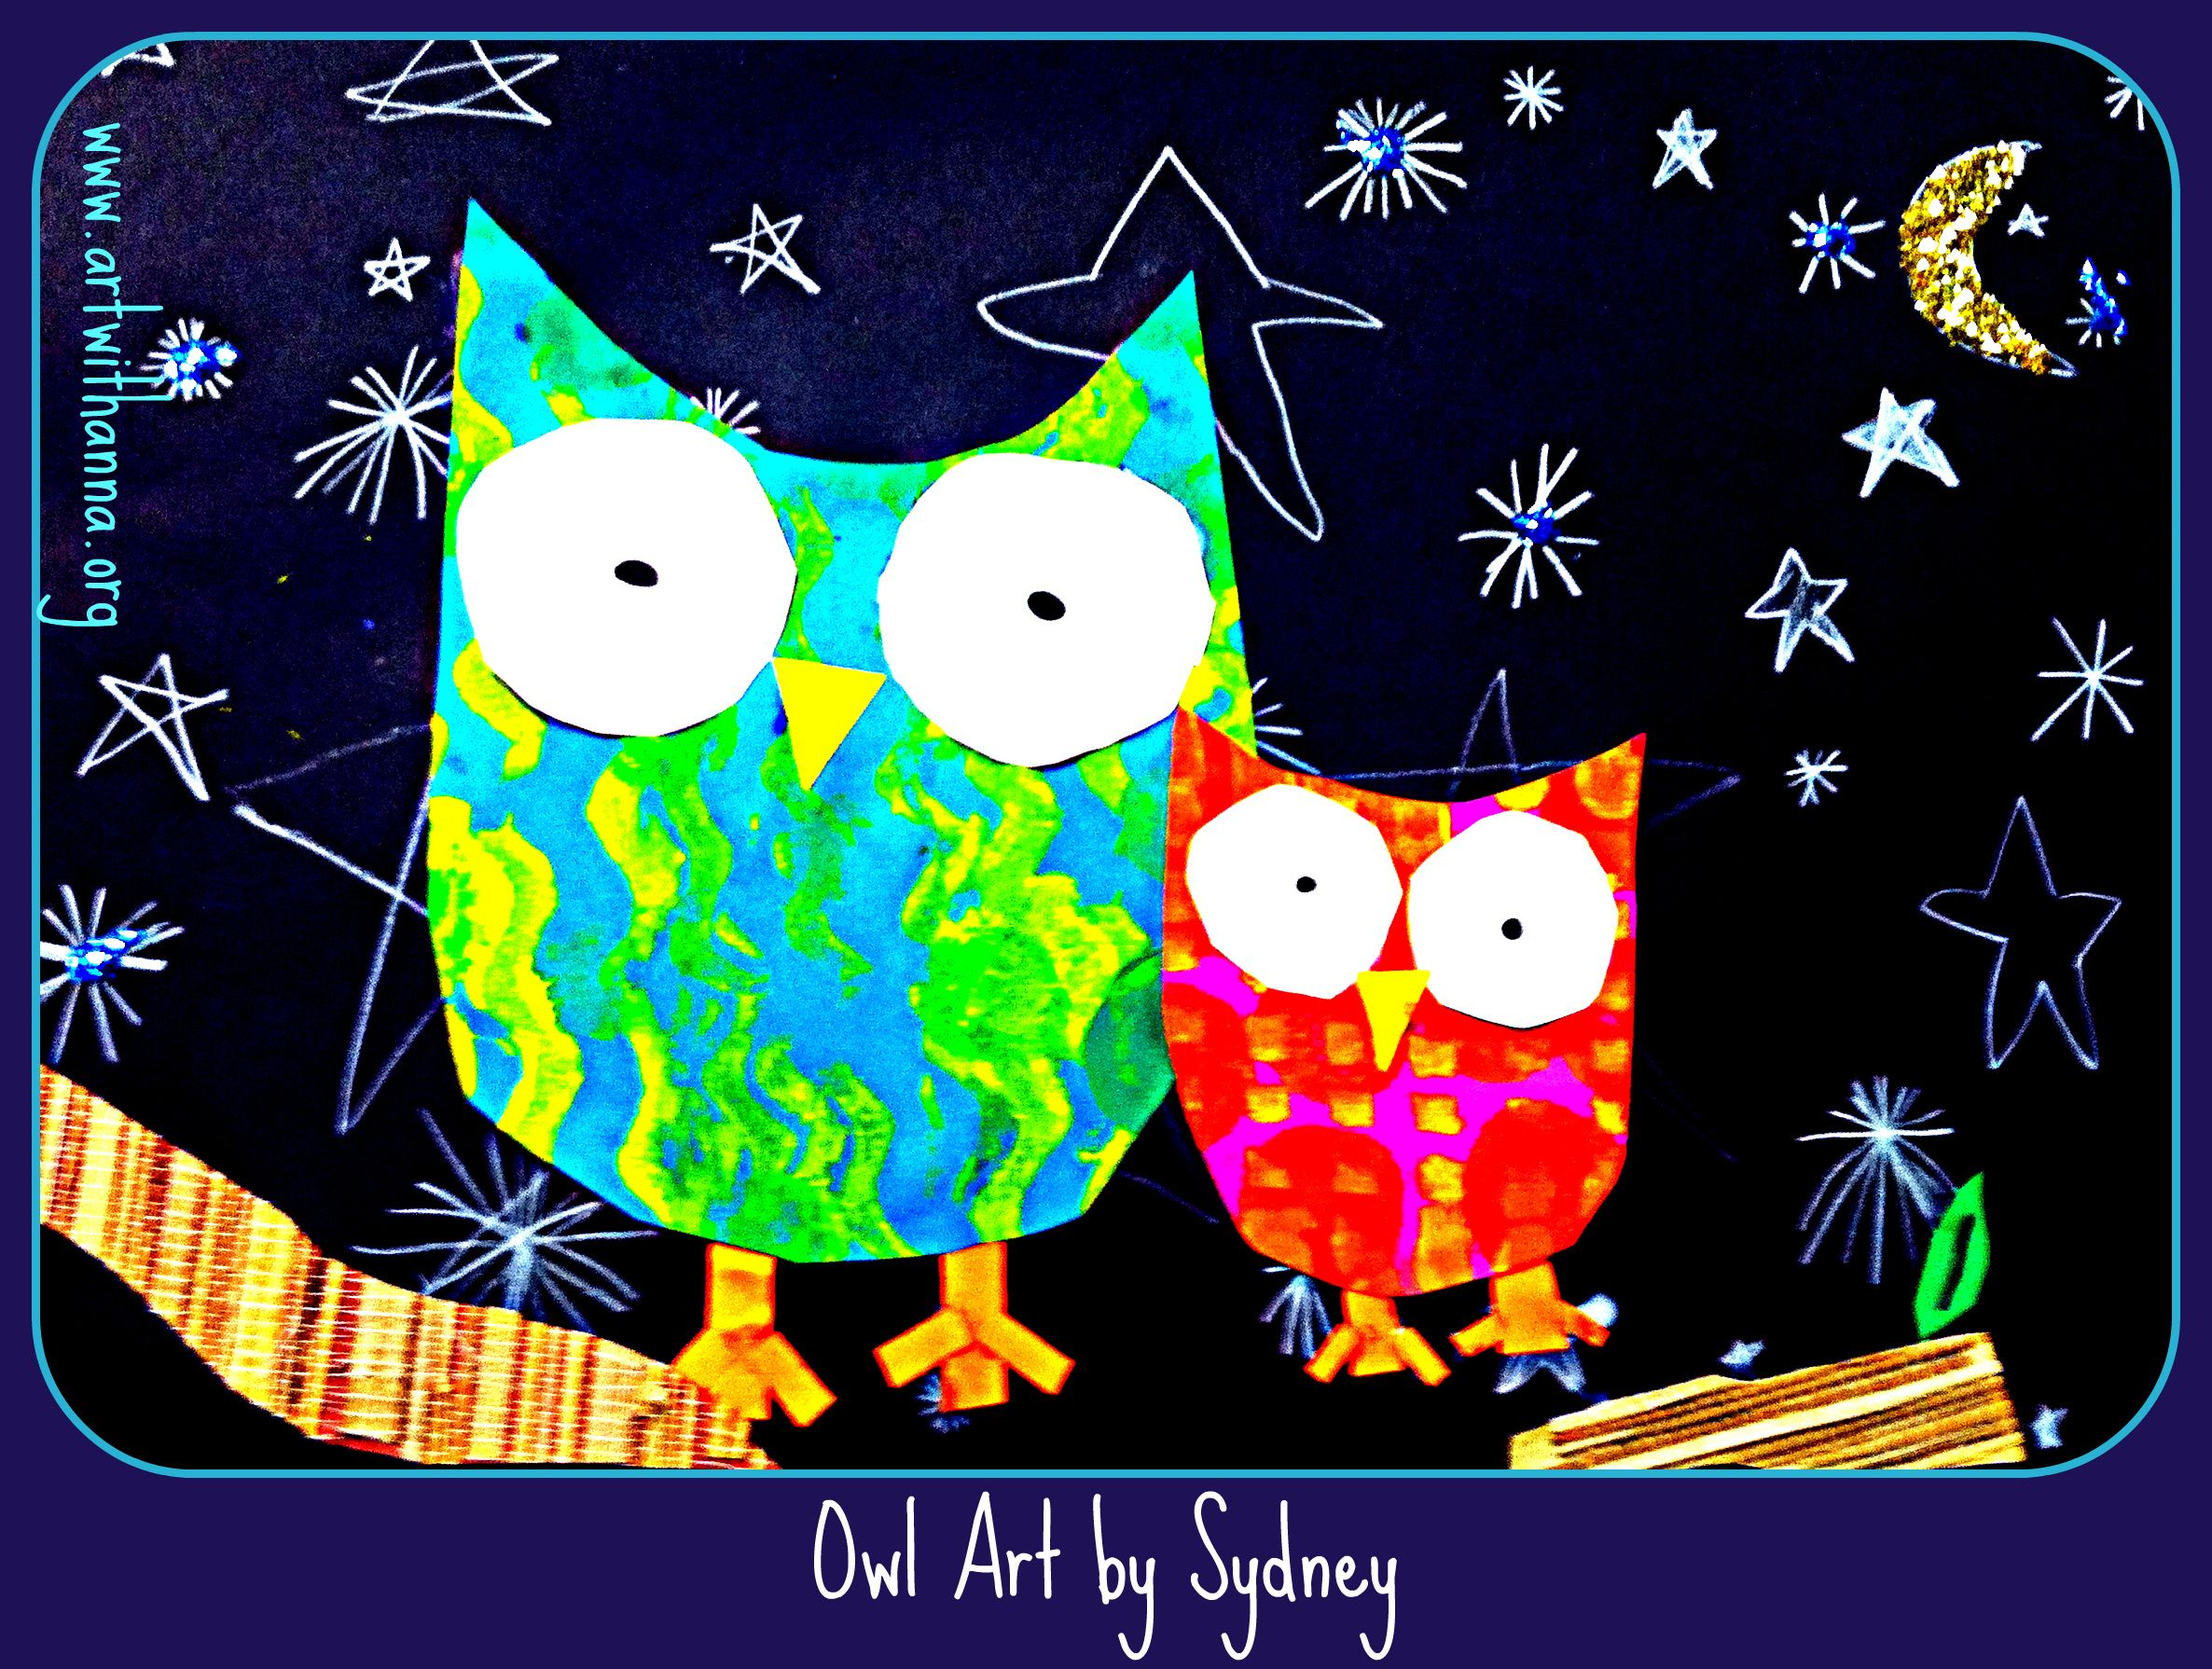 Owl art! Cut a template for kids to trace owl shape. (Paint patterns first) Black paper for background with white colored pencil stars. Glitter added to moon and textured paper for tree. ADORABLE!